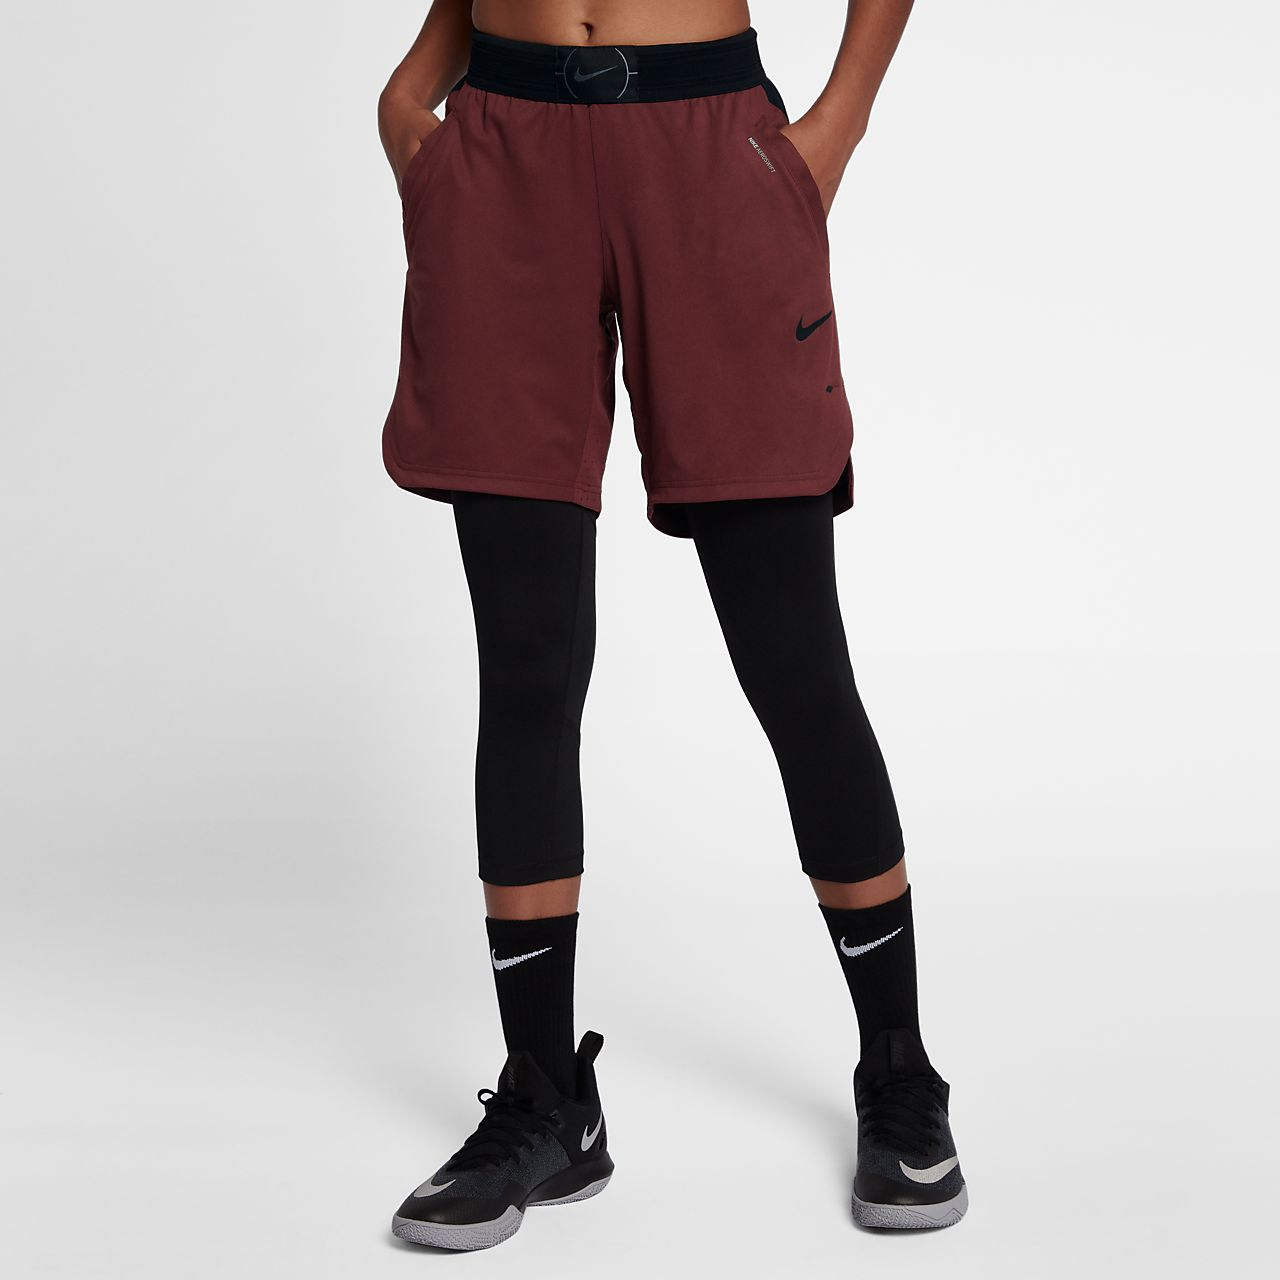 Basketball Shorts Nike Women's 8\